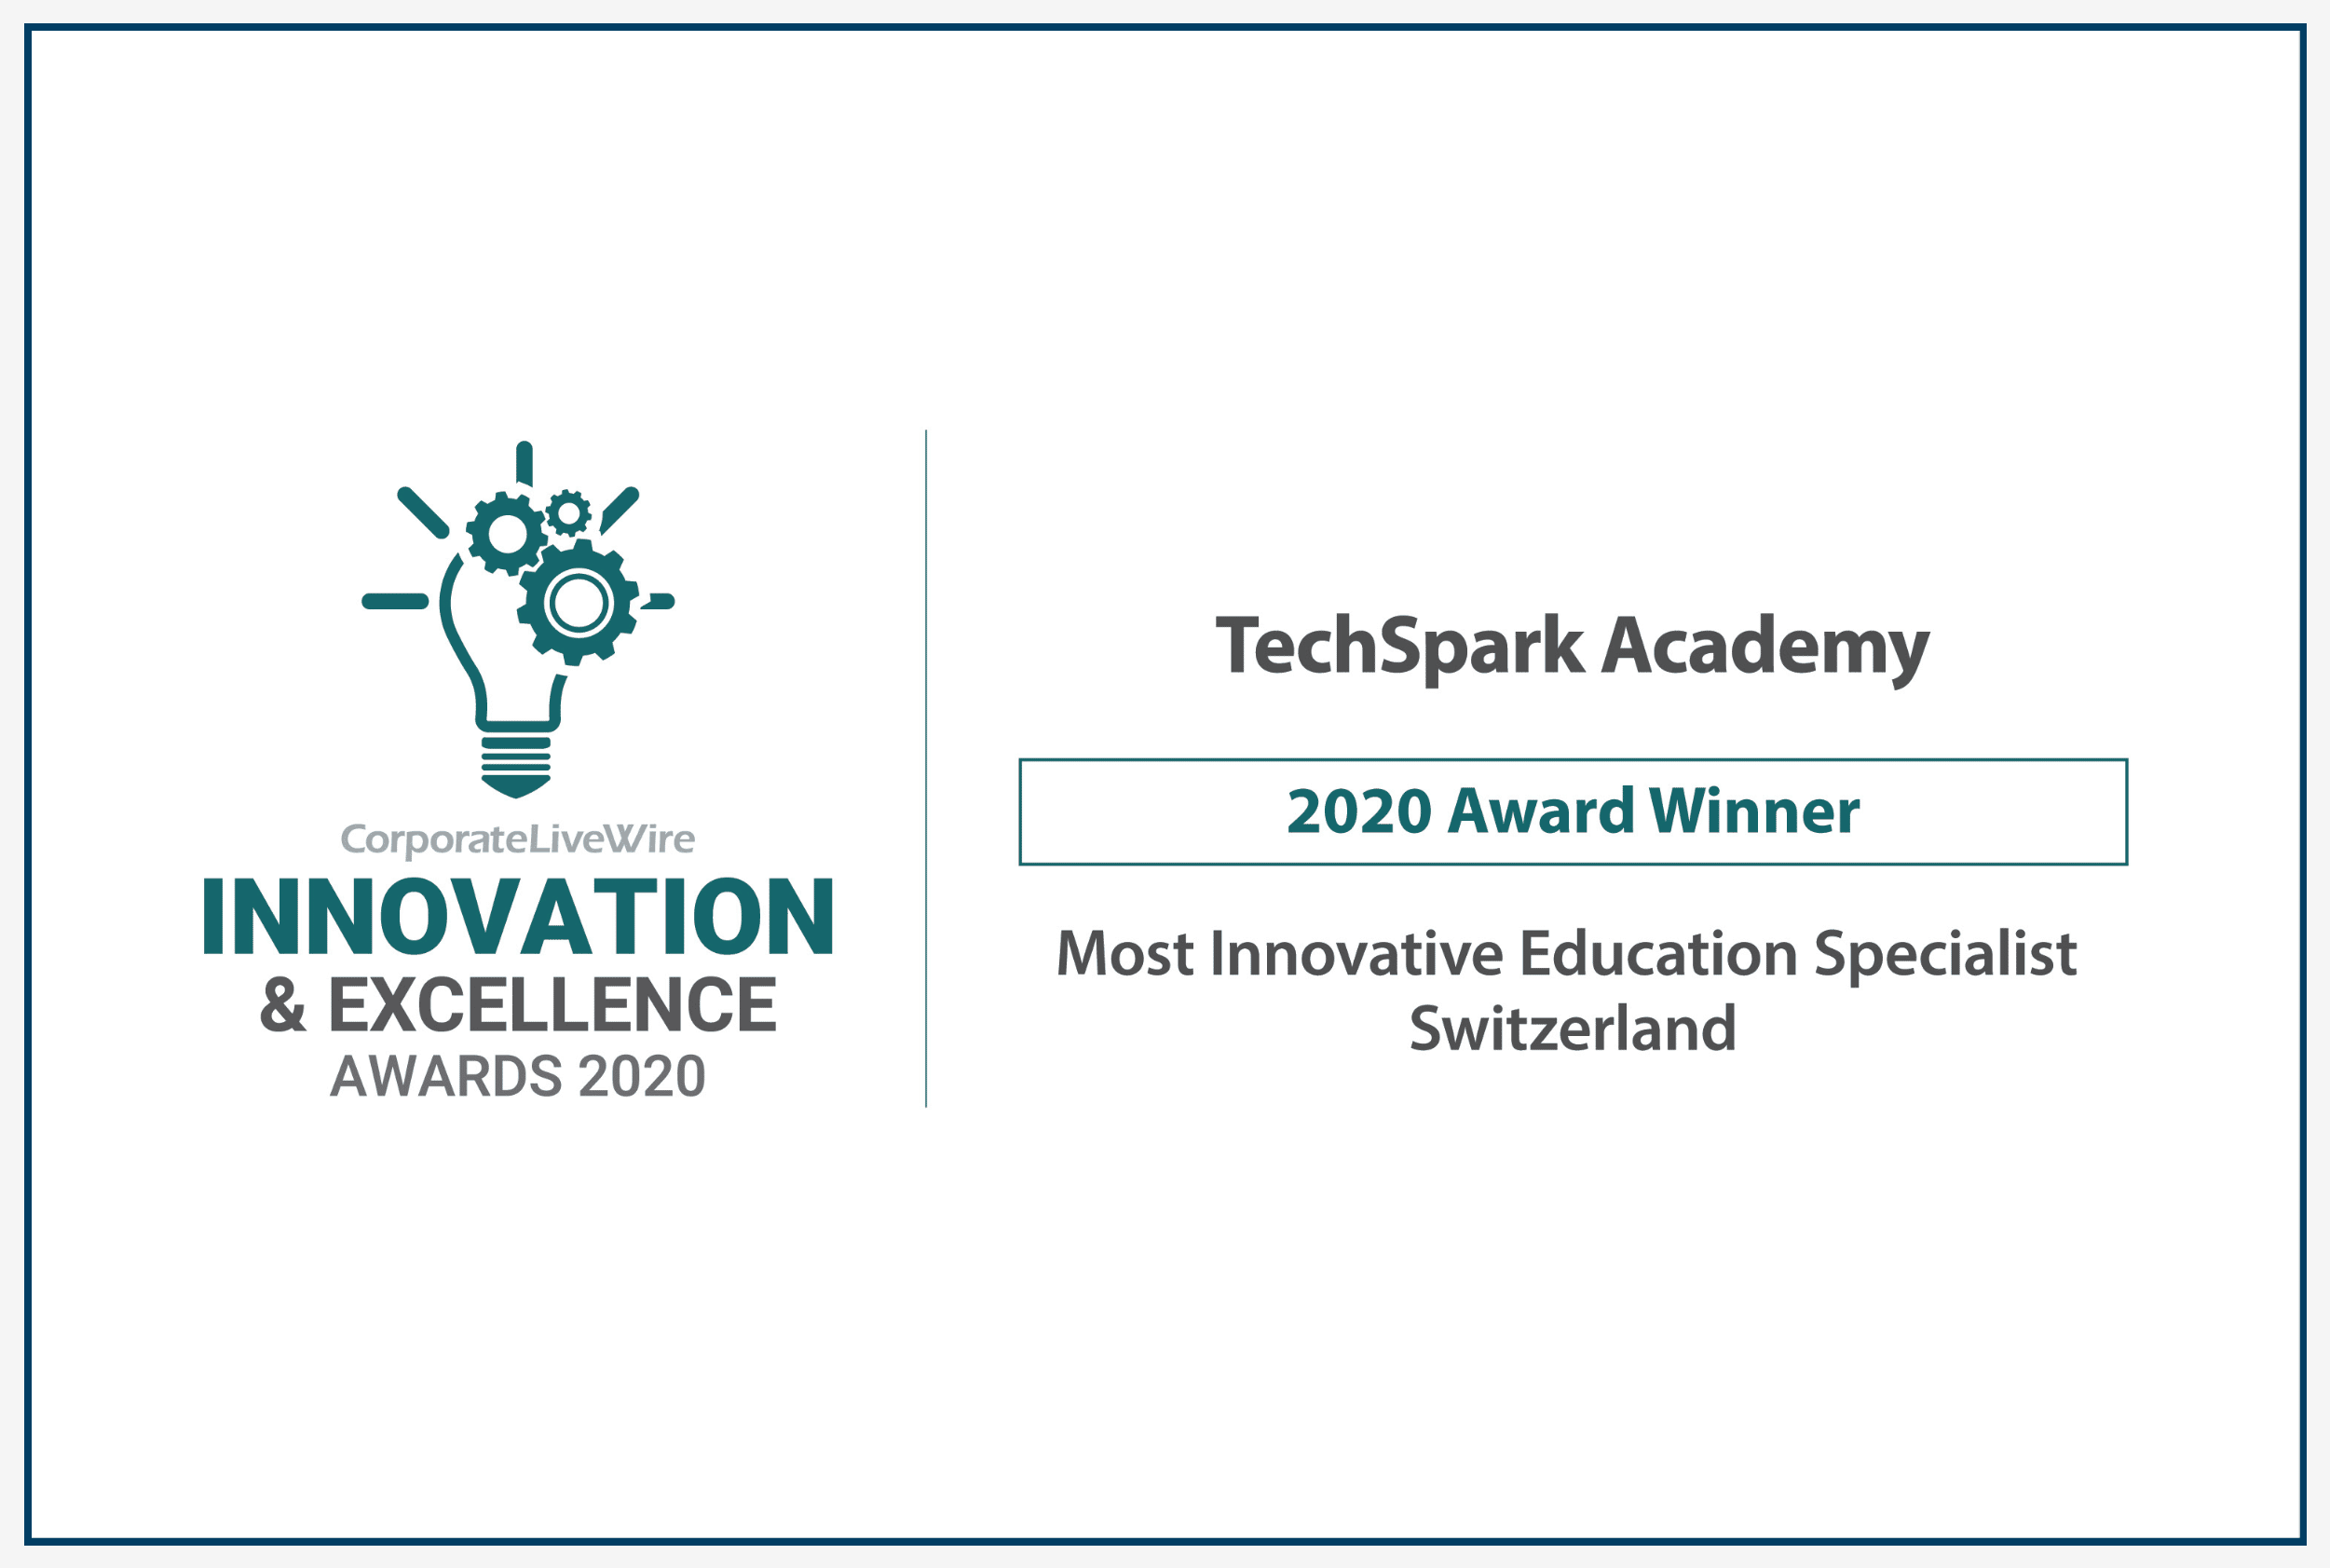 TechSpark Academy wins Most Innovative Education Specialist in Switzerland